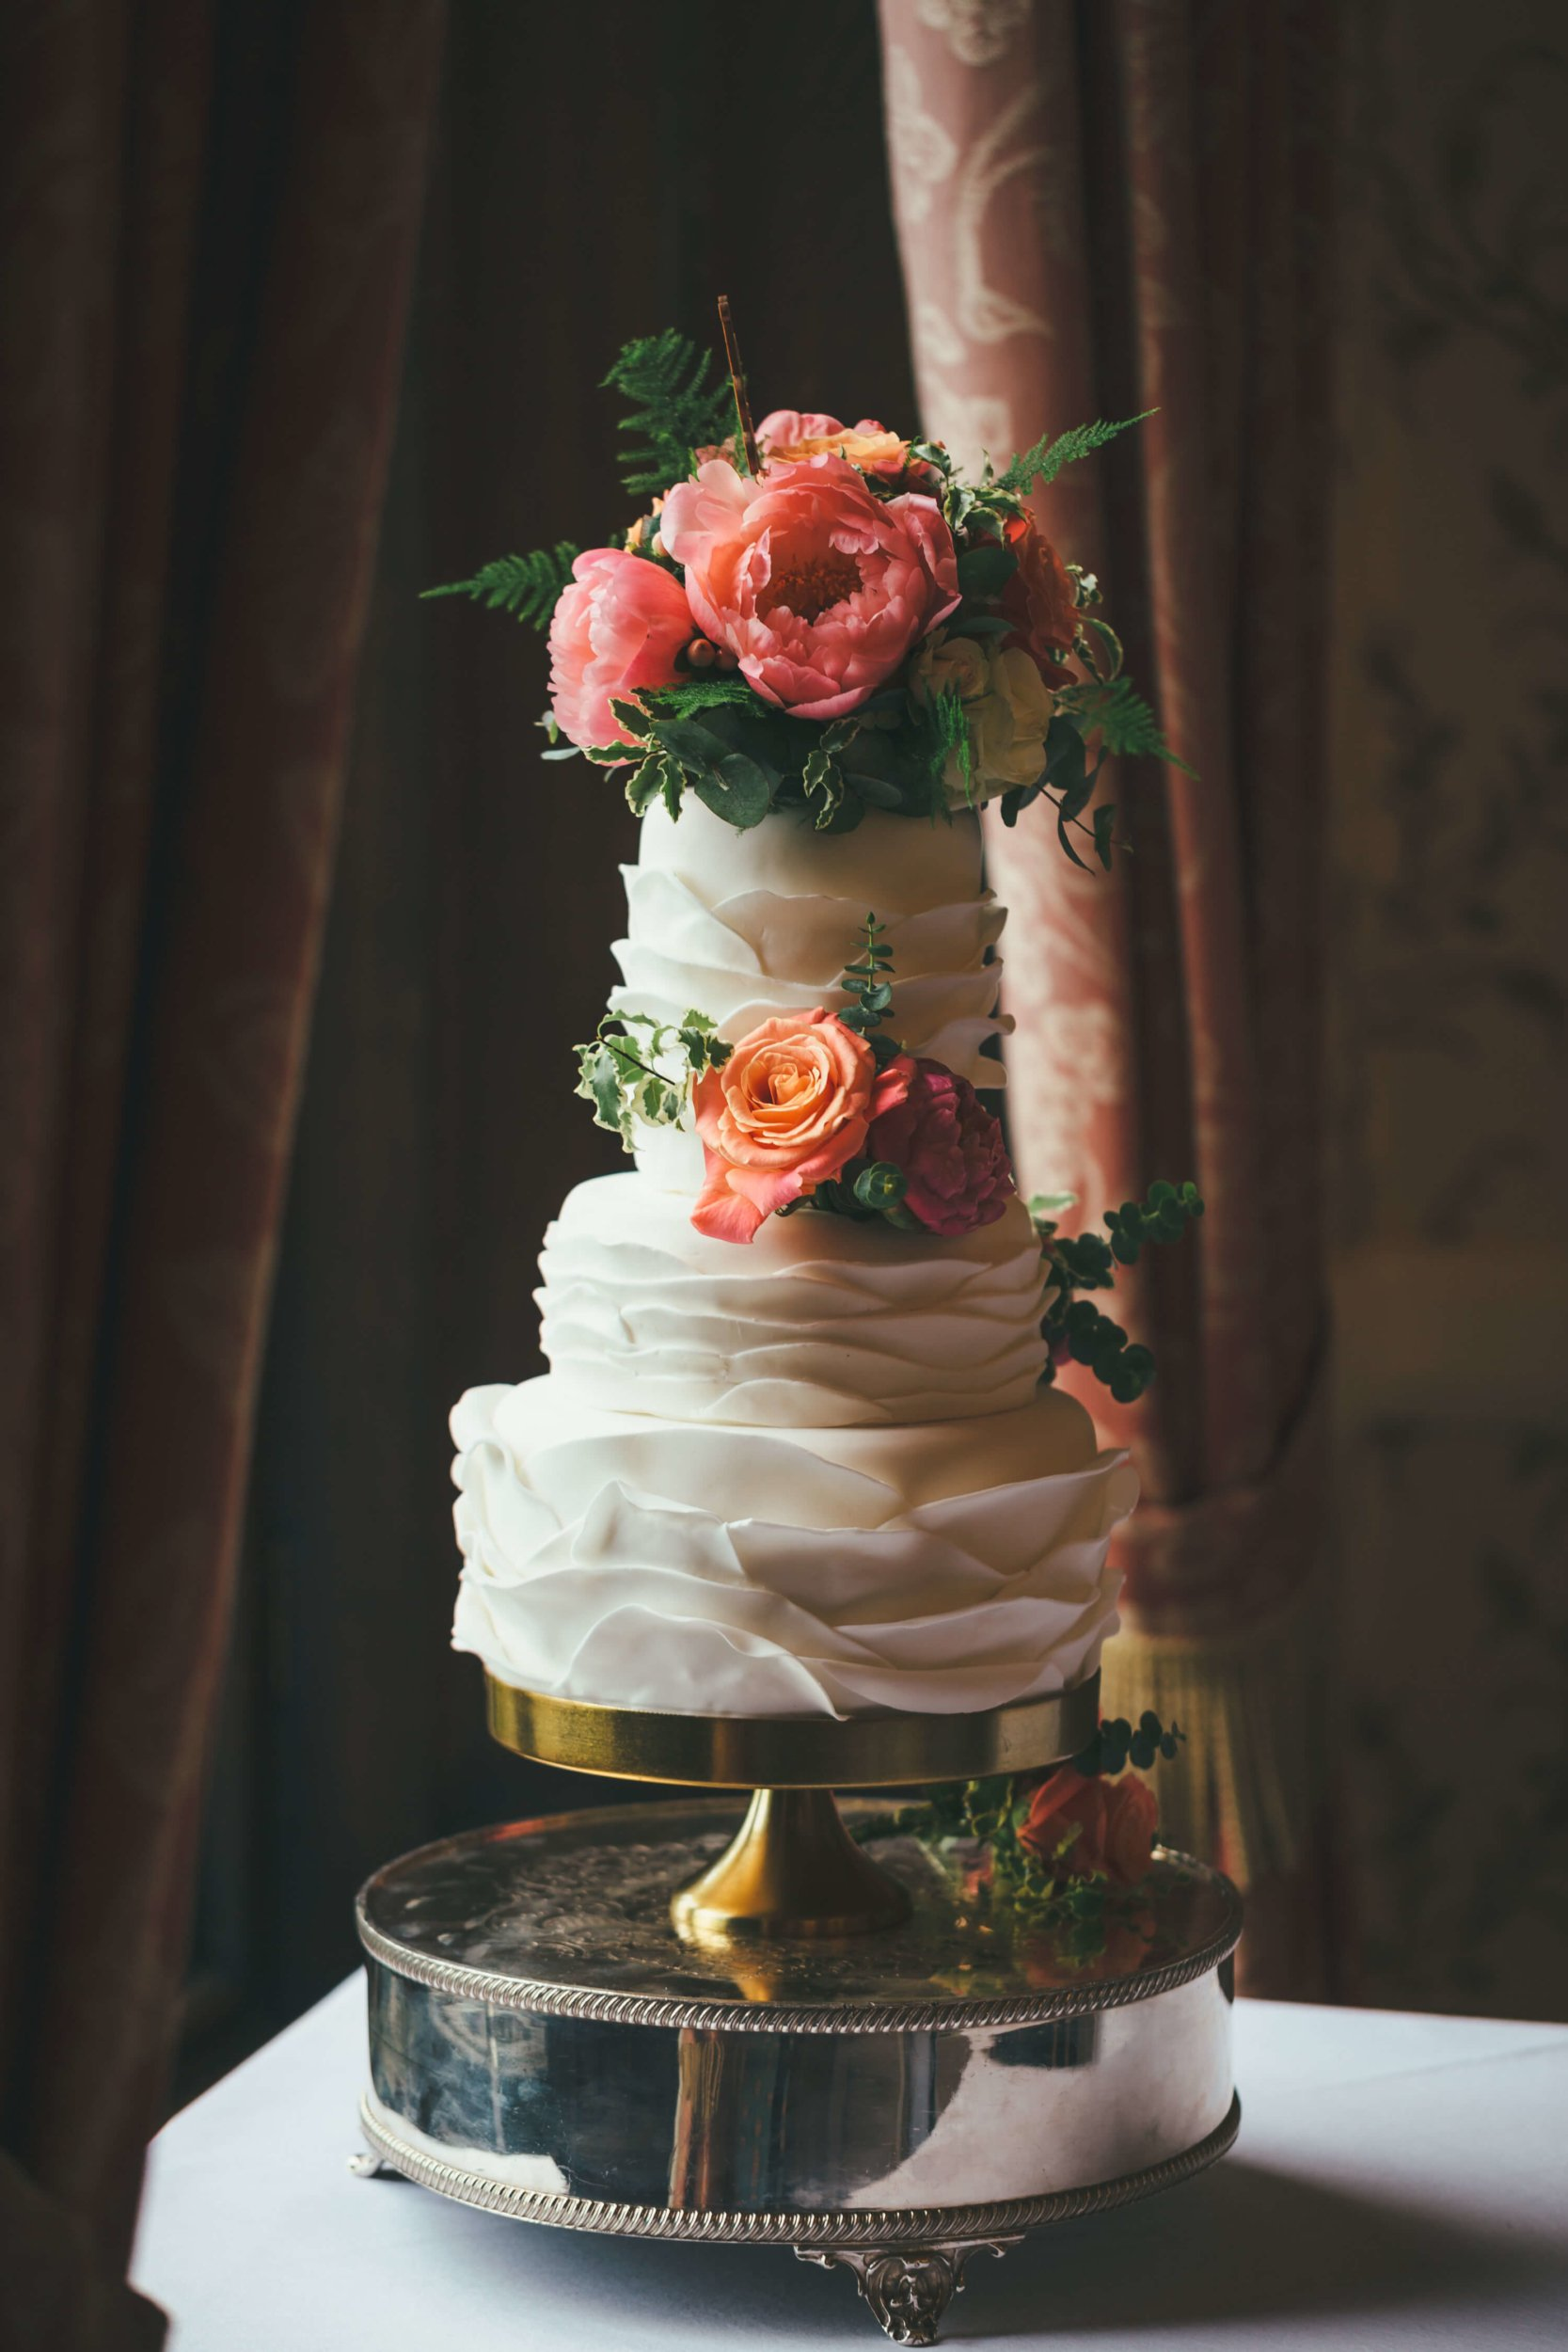 The Wedding Cake | Ruffles and Bright Peonies